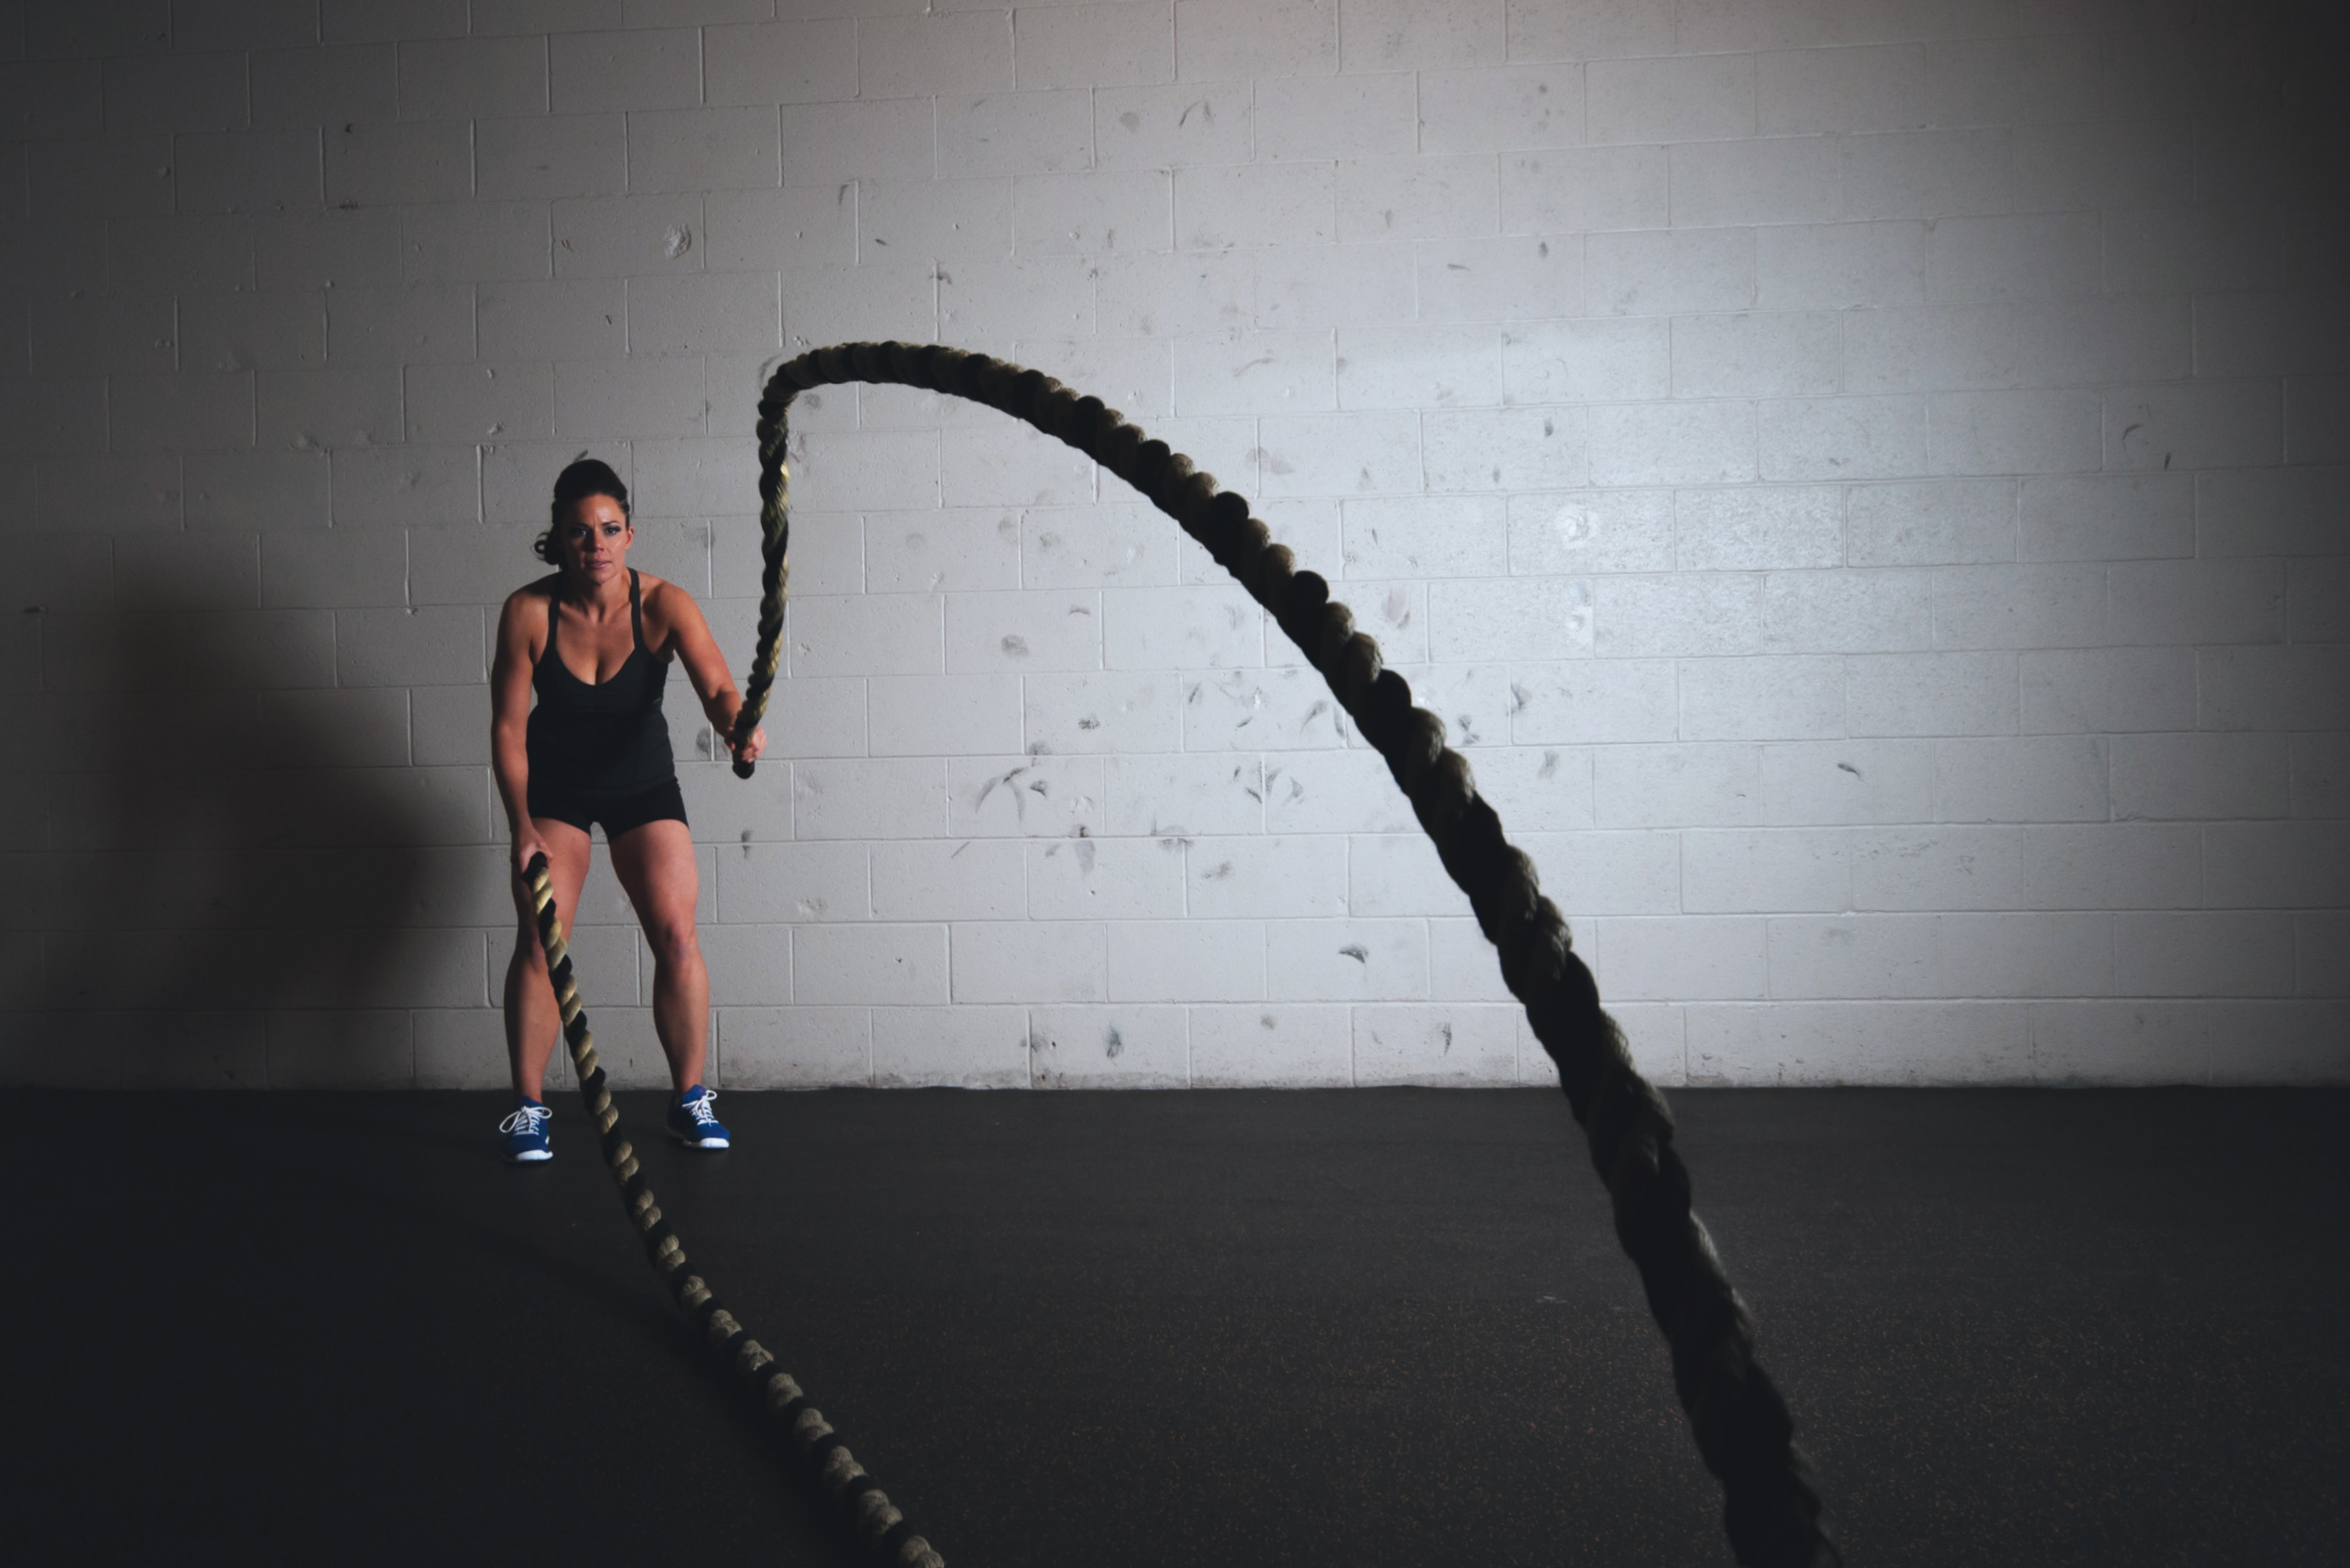 Technical Penguins White Paper on WordPress speed optimization: A background image shows a woman in athletic wear using ropes as part of a Crossfit workout.